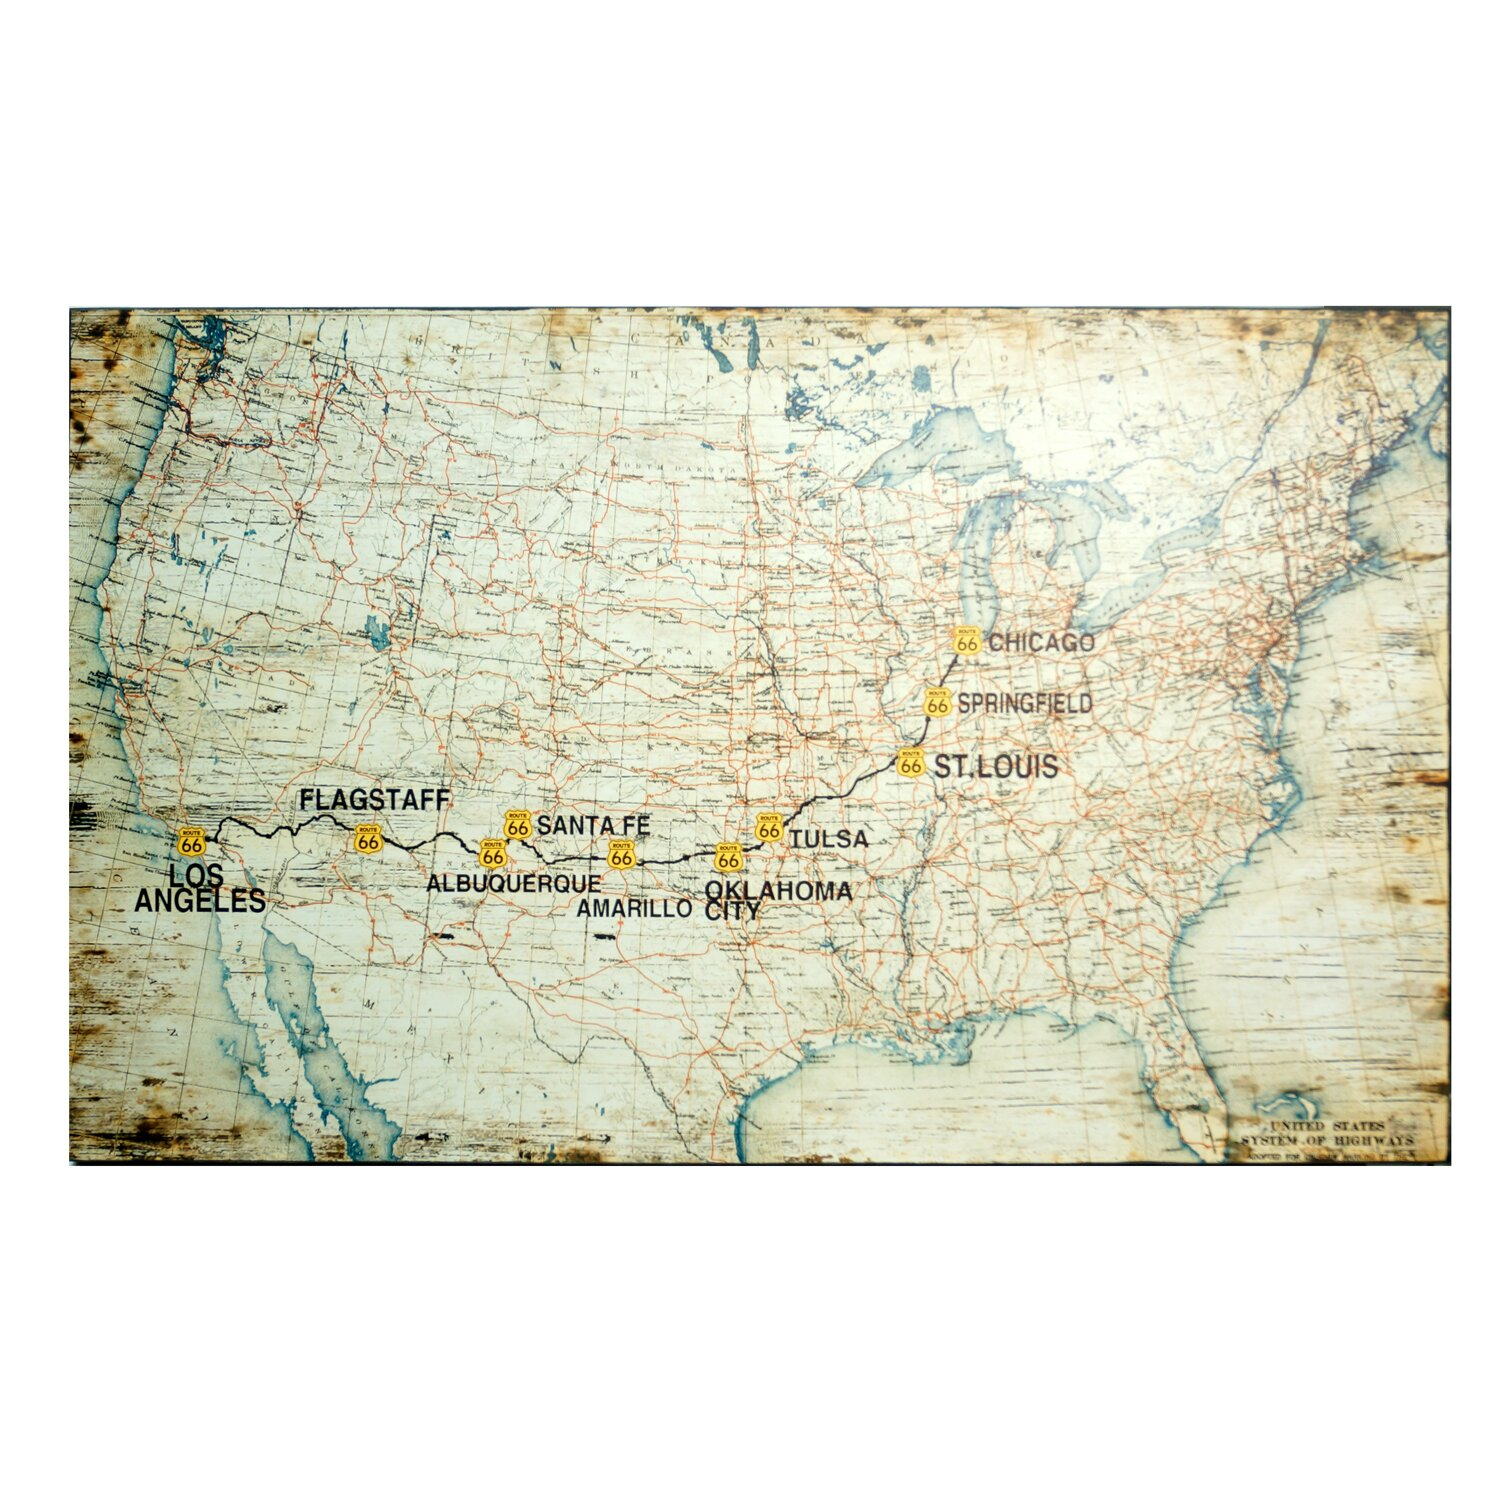 Route  Planner Route  Planner Map Of The Us States Printable - Map of us 66